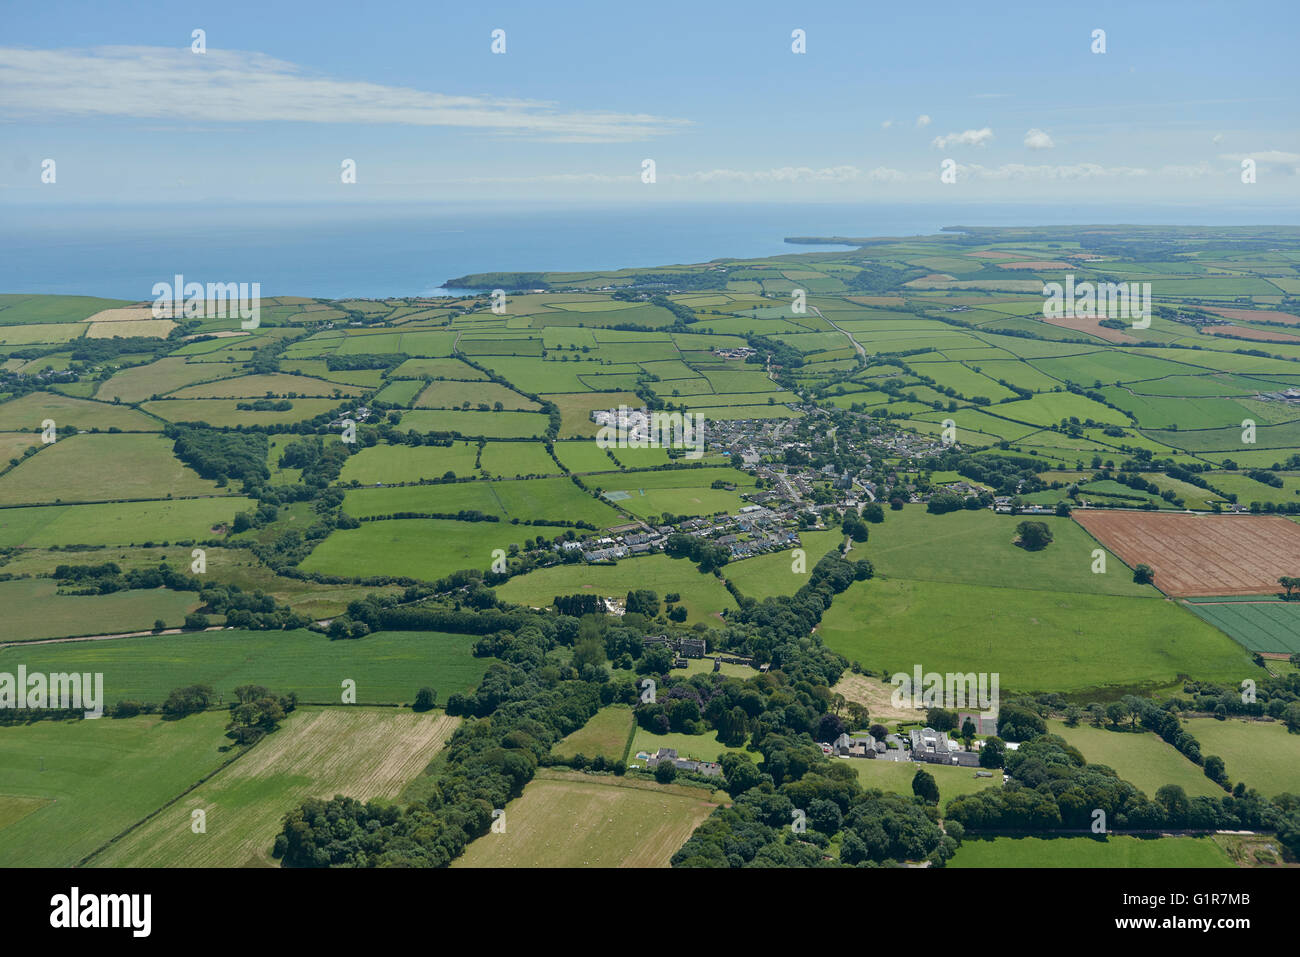 An aerial view of the Pembrokeshire village of Lamphey and surrounding countryside - Stock Image